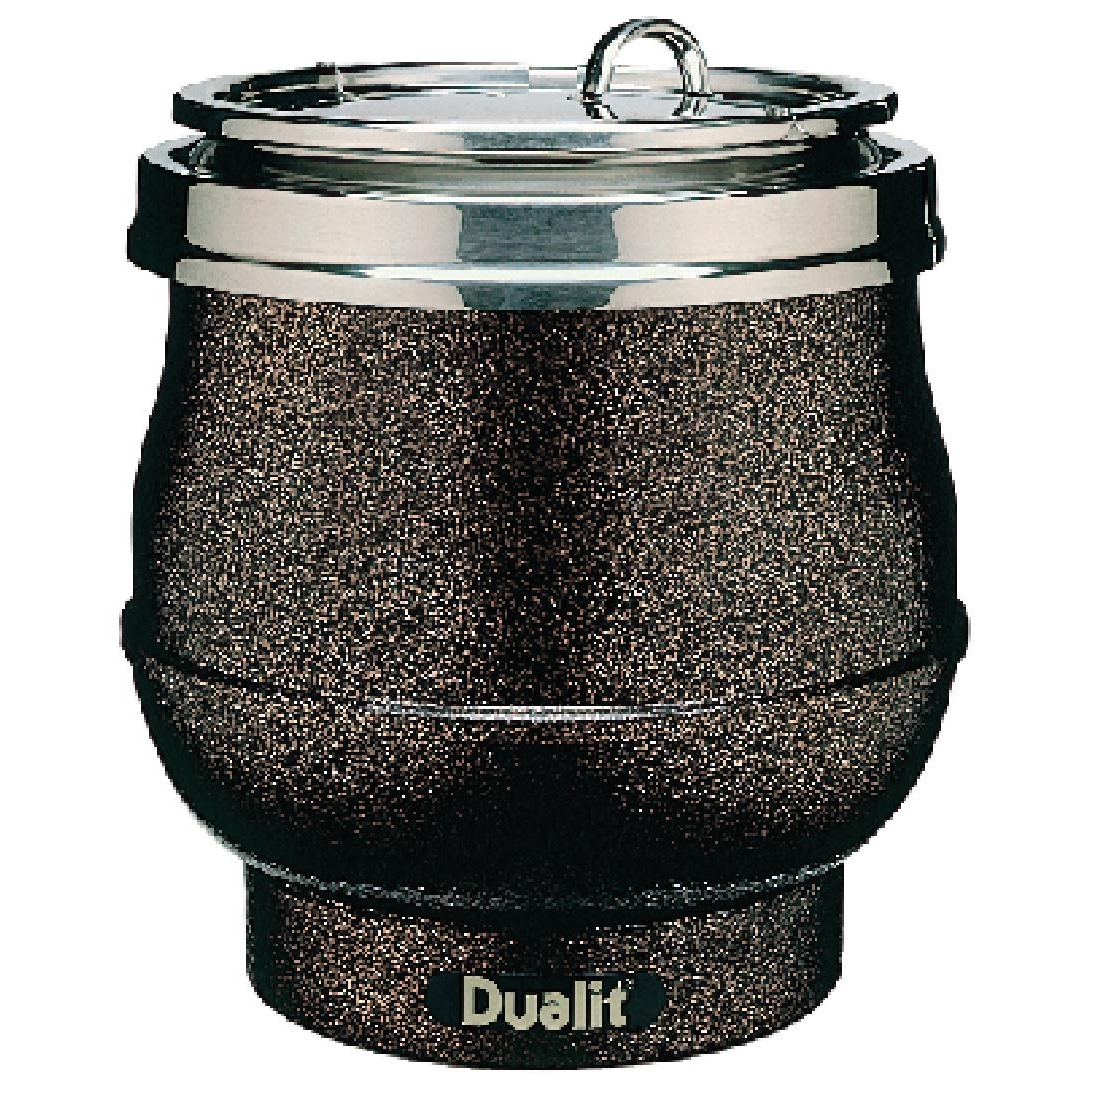 Dualit Hotpot Soup Kettle Rustic Brown 70007